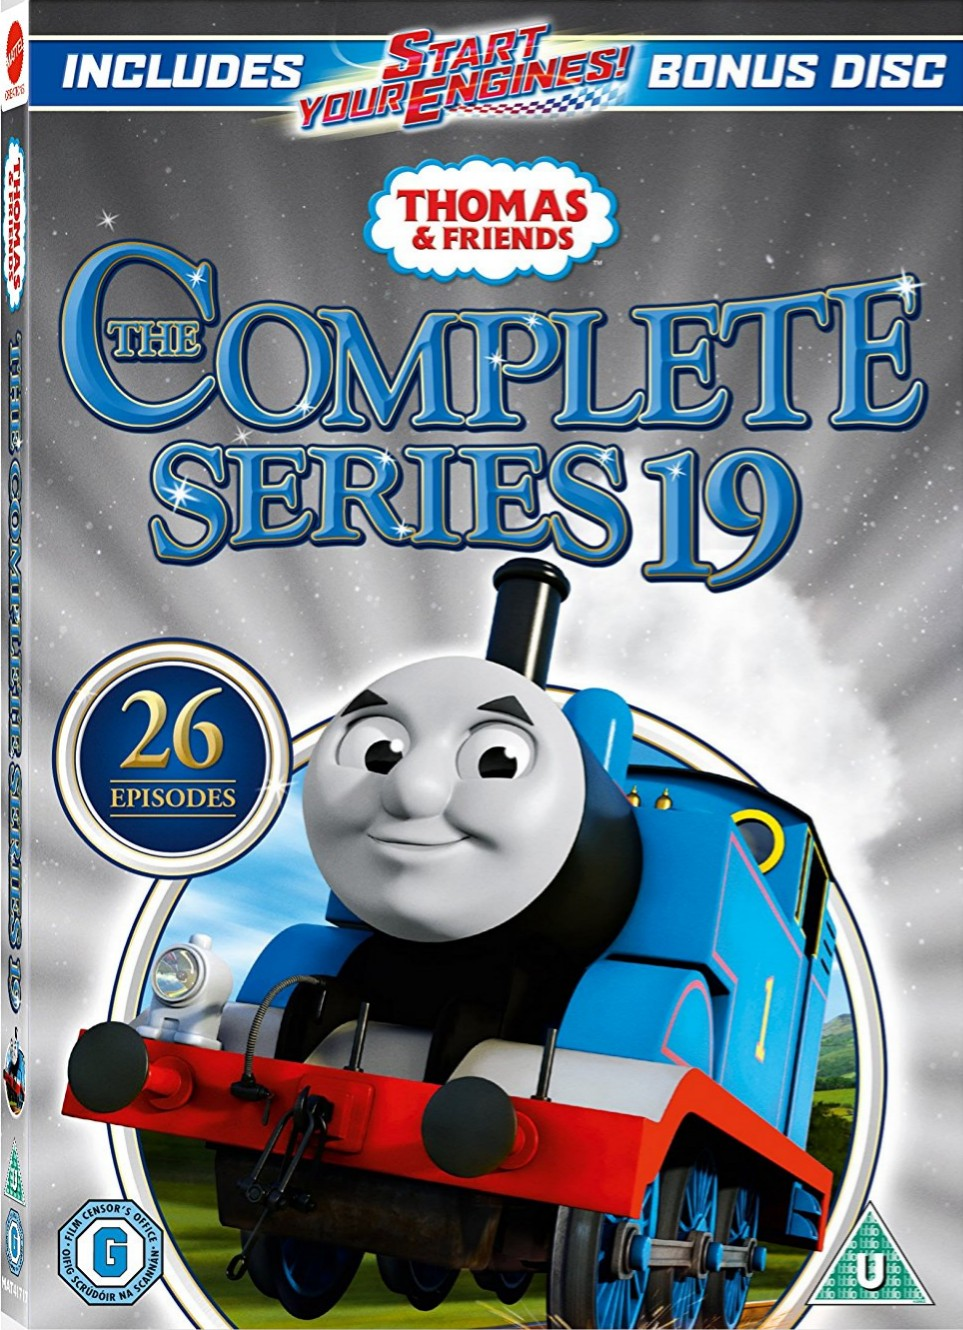 the complete series 19 thomas the tank engine wikia. Black Bedroom Furniture Sets. Home Design Ideas